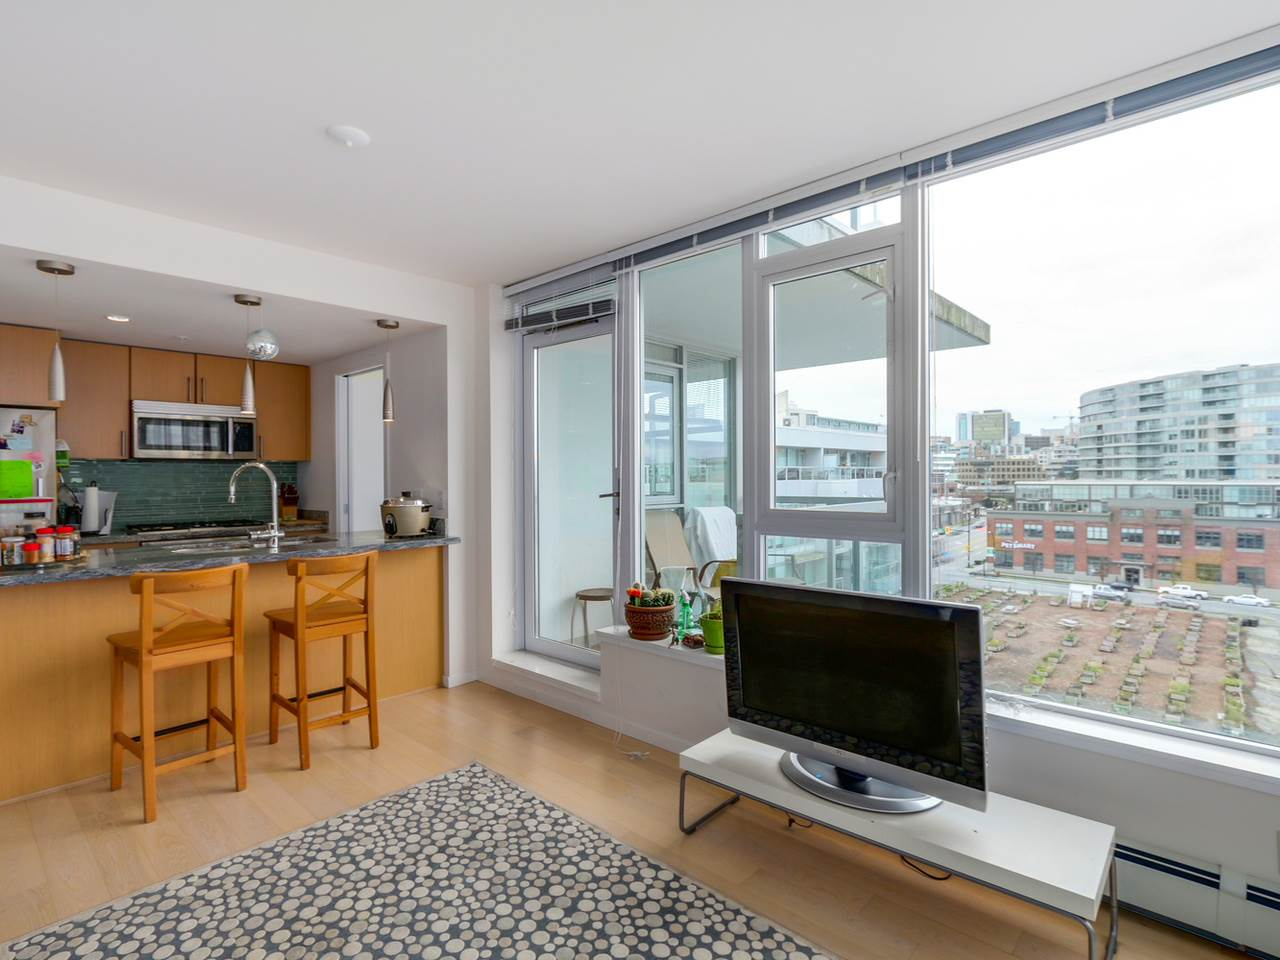 "Photo 5: 802 1887 CROWE Street in Vancouver: False Creek Condo for sale in ""PINNACLE ON FALSE CREEK"" (Vancouver West)  : MLS® # R2044450"